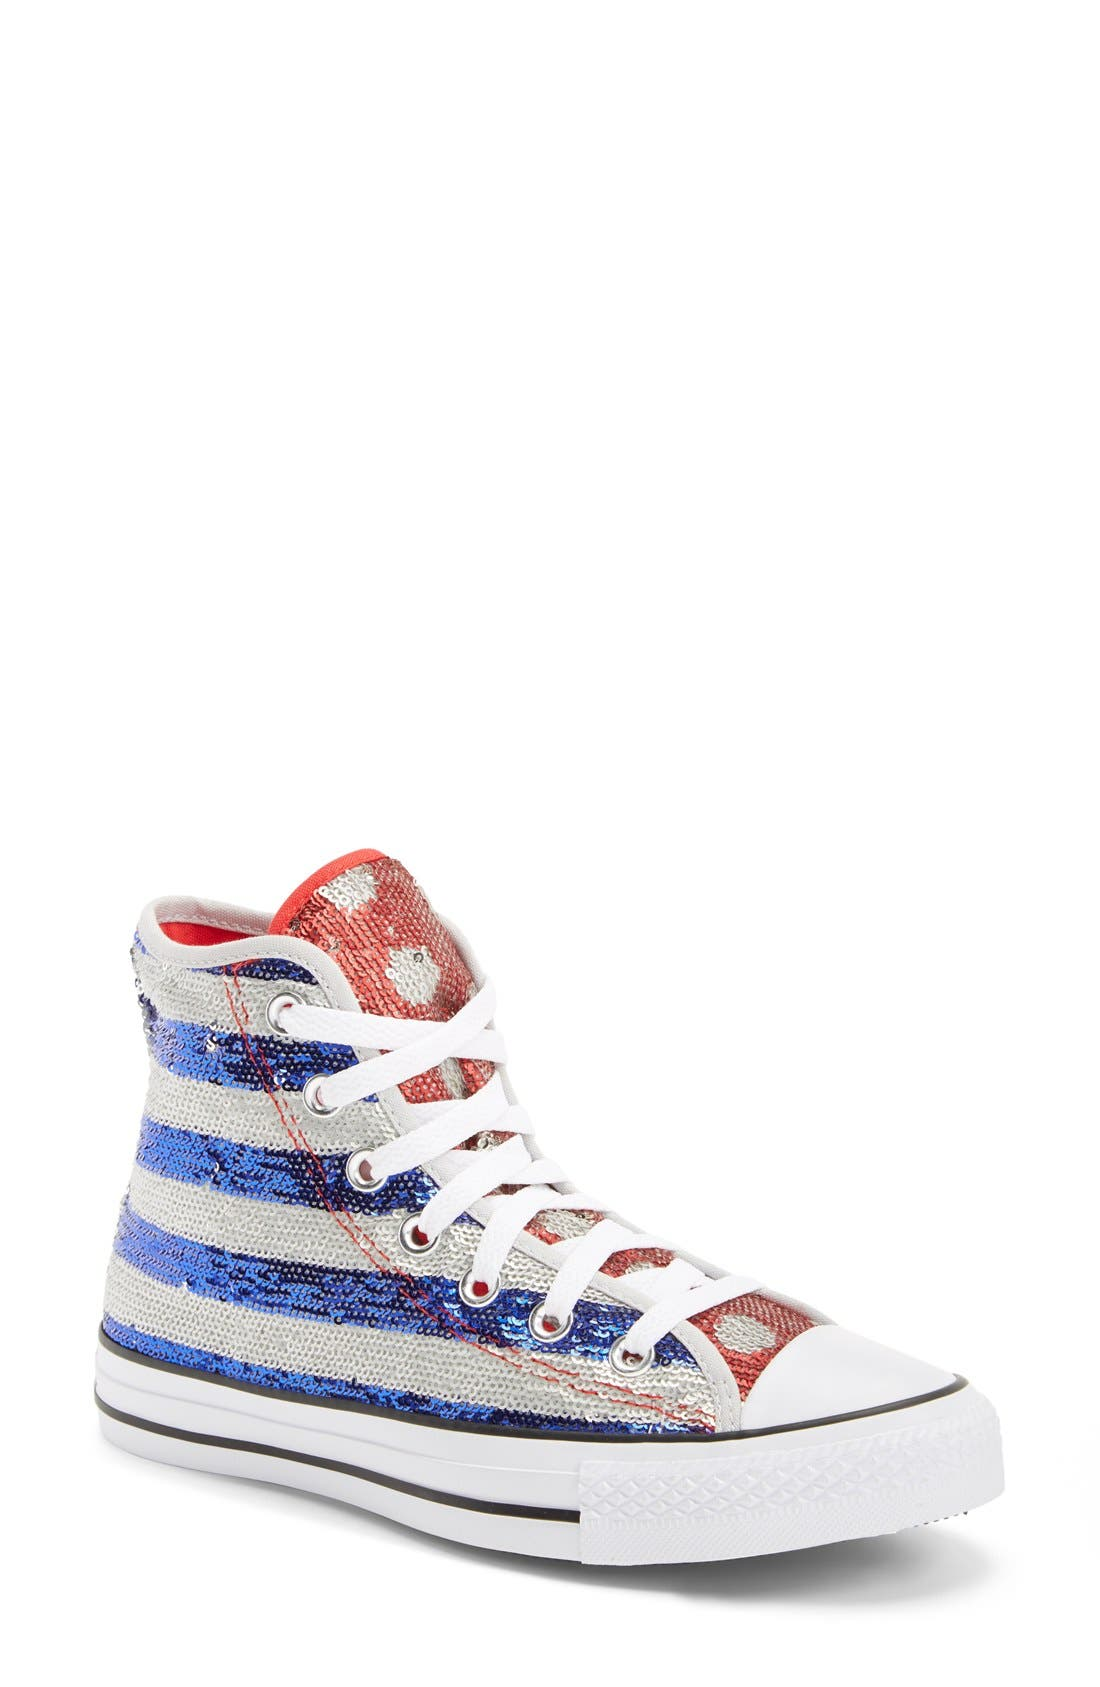 Main Image - Converse Chuck Taylor® All Star® Sequin Flag High Top Sneaker (Women)